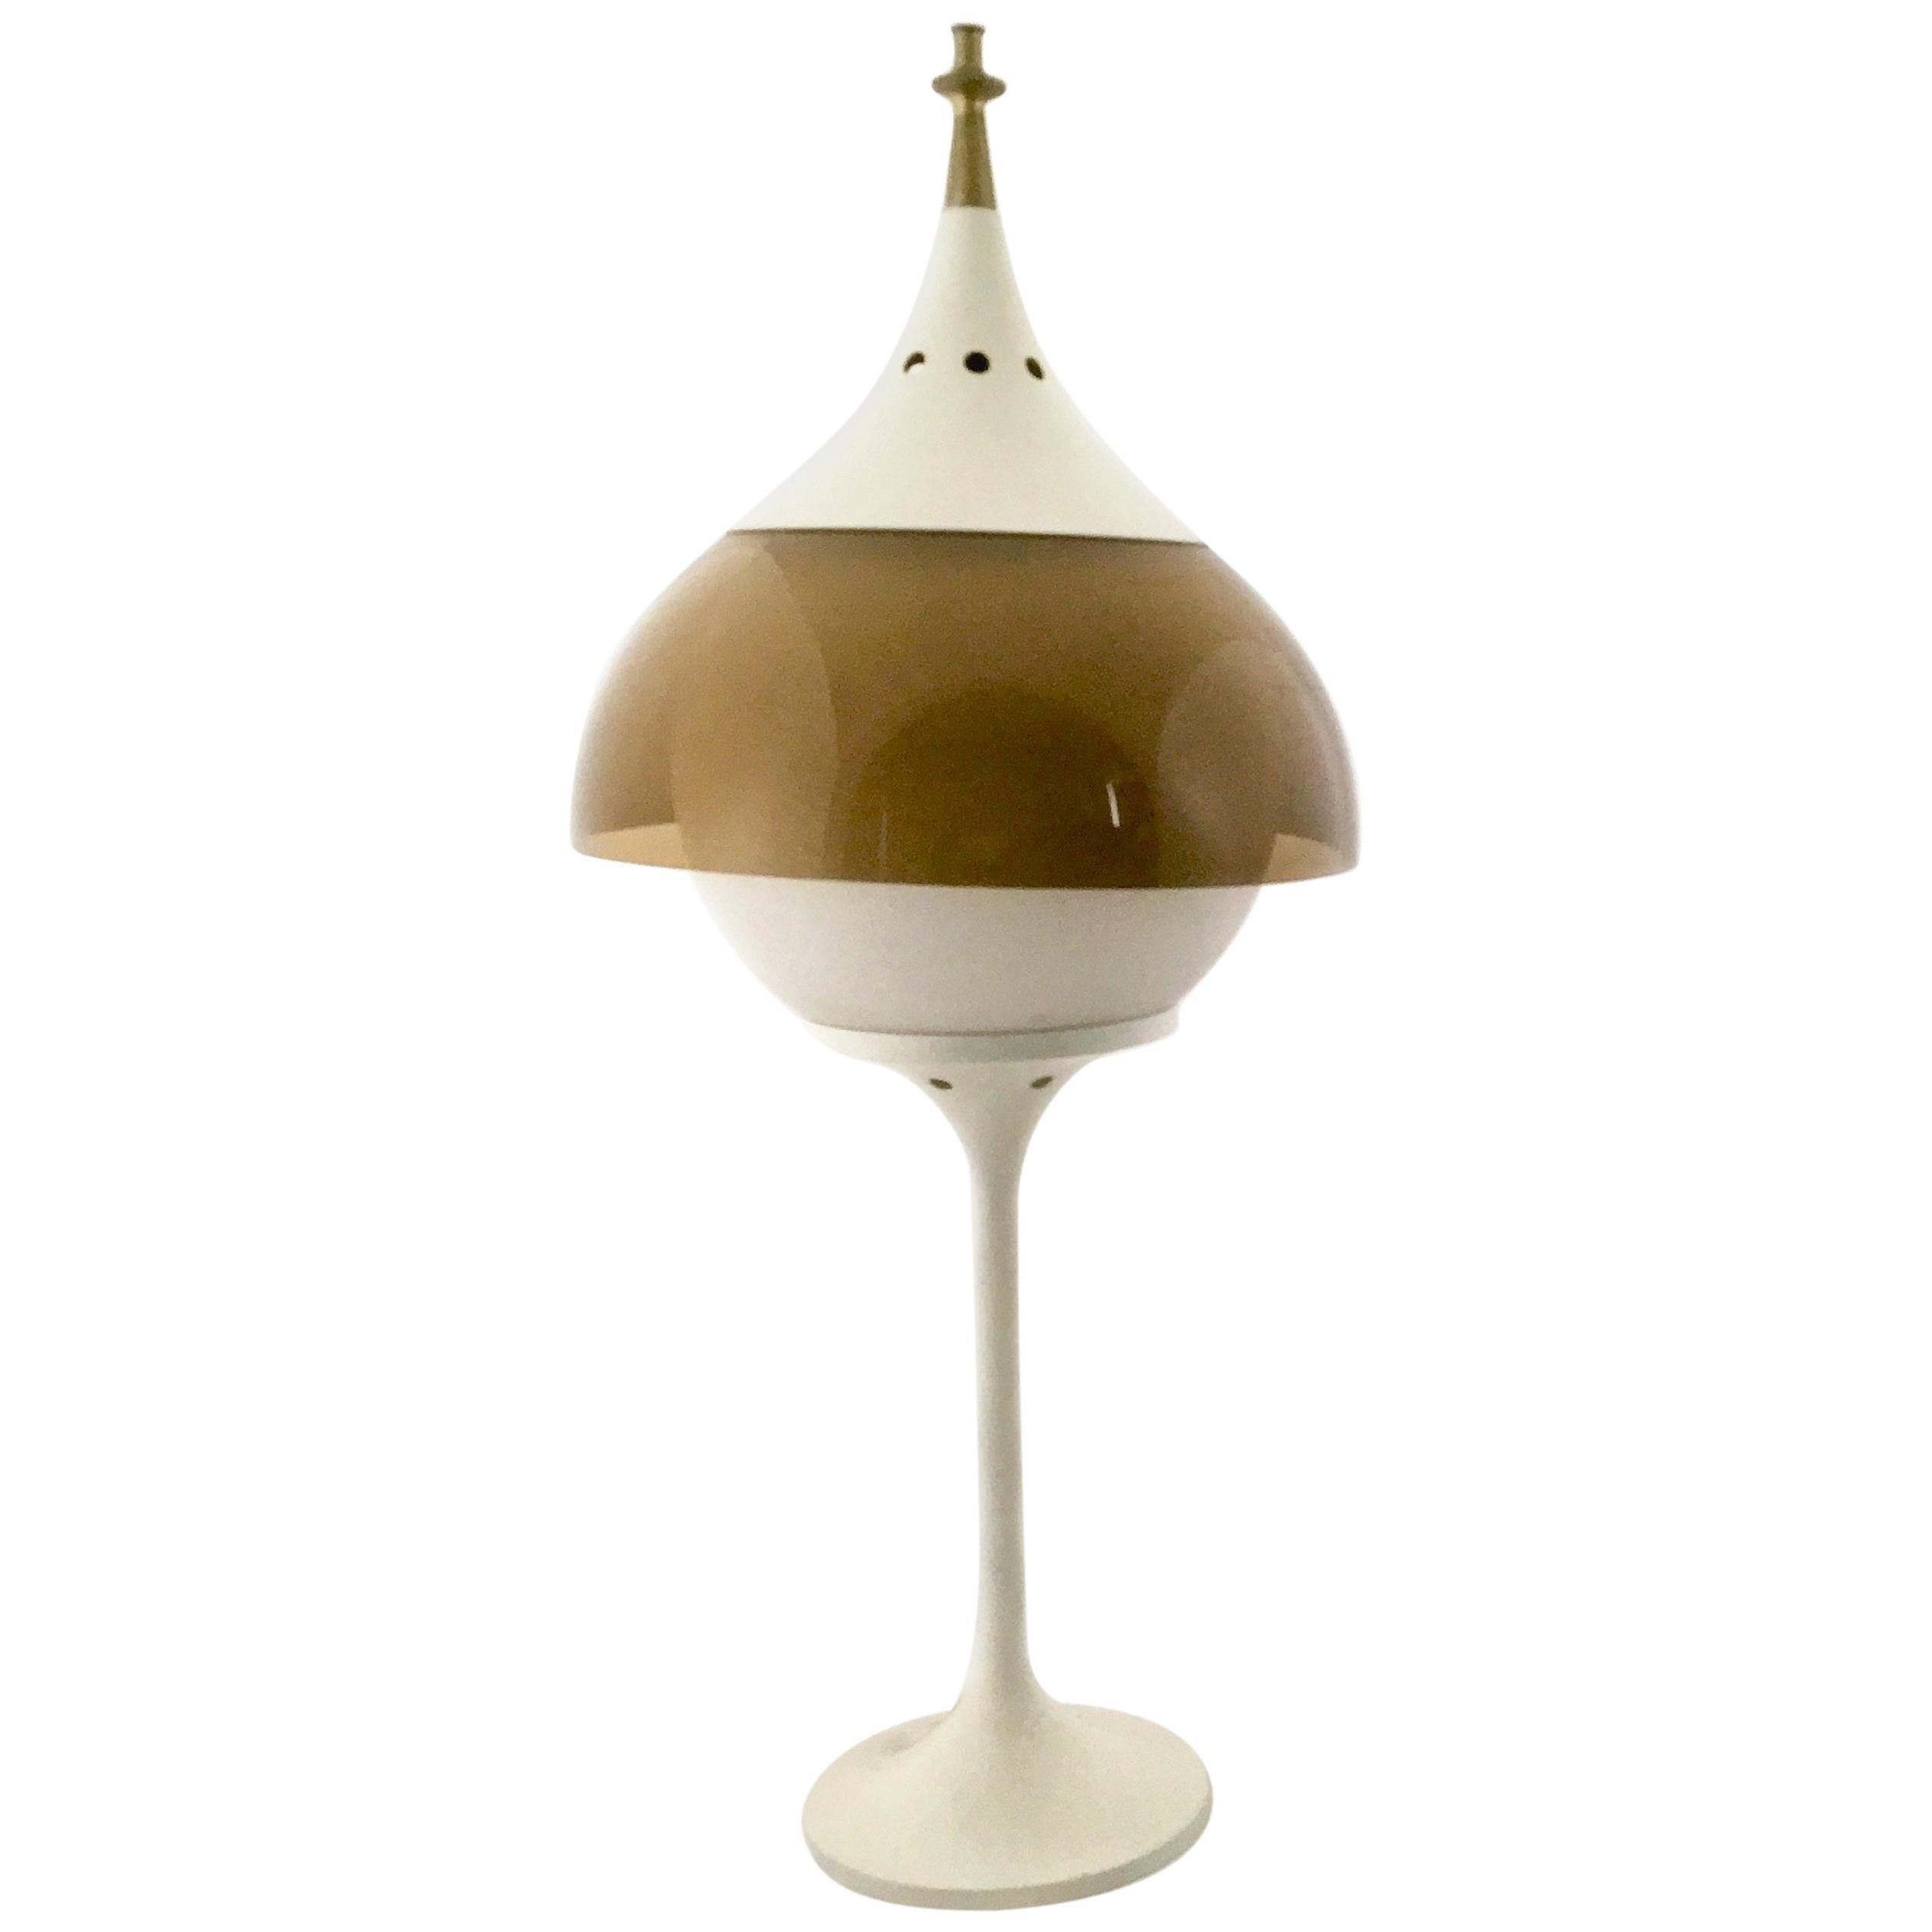 Space Age Plexiglass and White Varnished Metal Table Lamp, Italy, 1970s